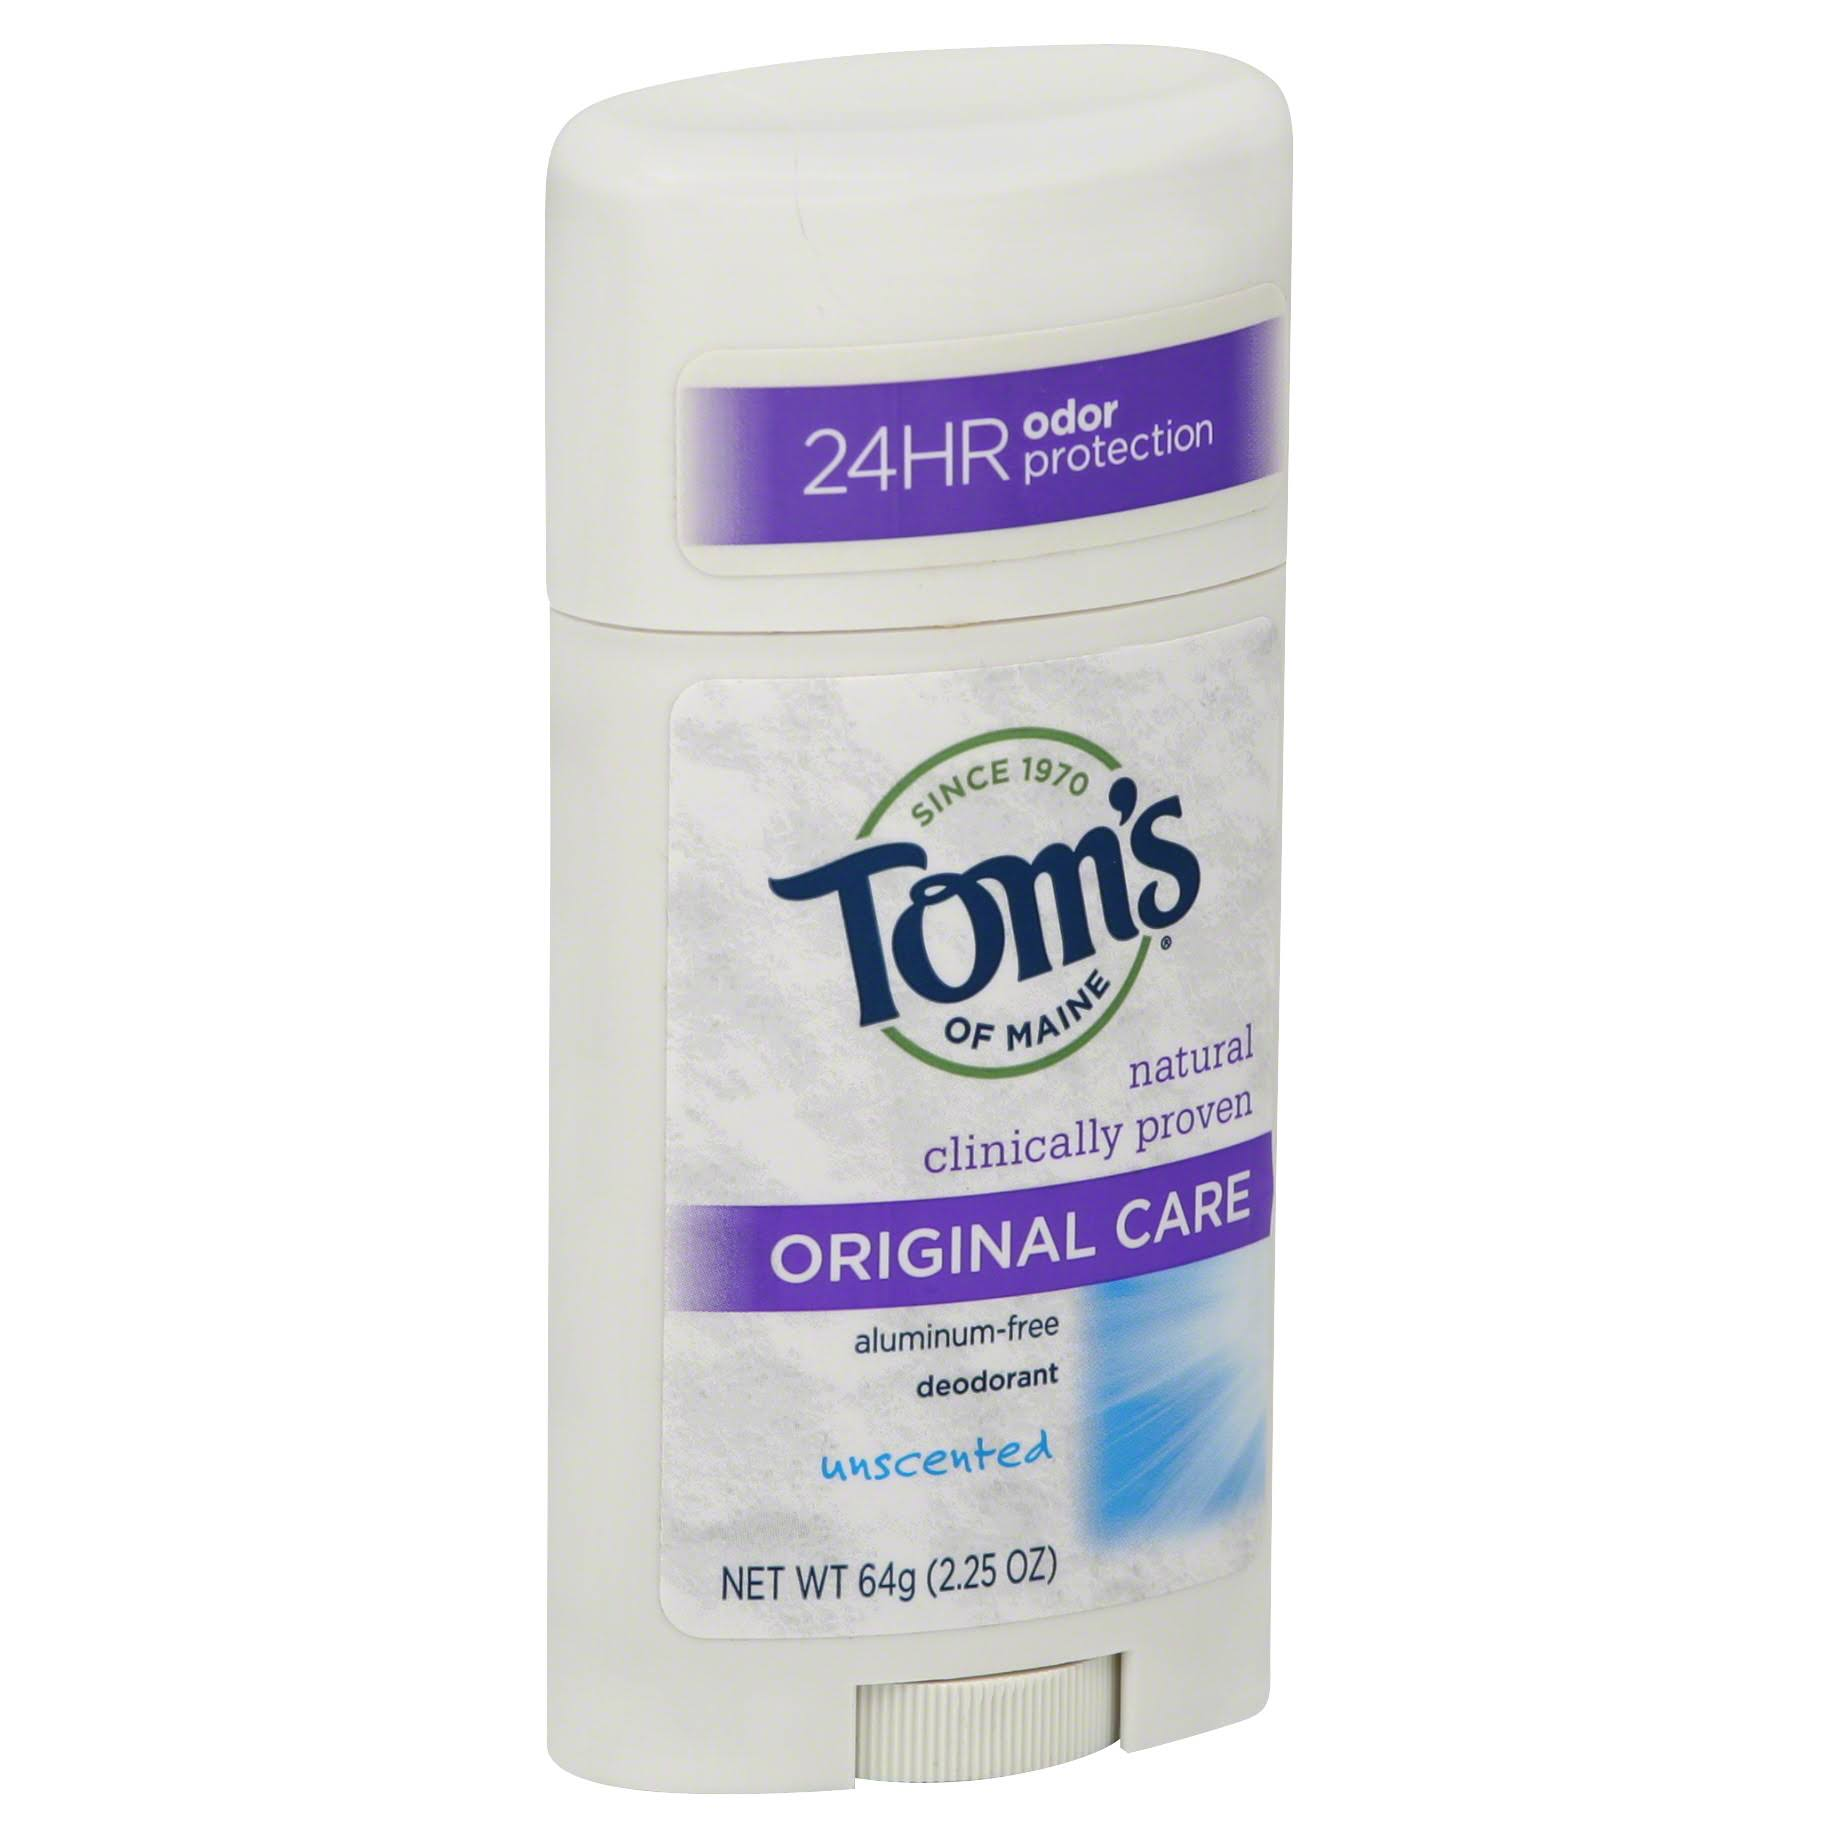 Toms of Maine Deodorant, Original Care, Unscented - 2.25 oz